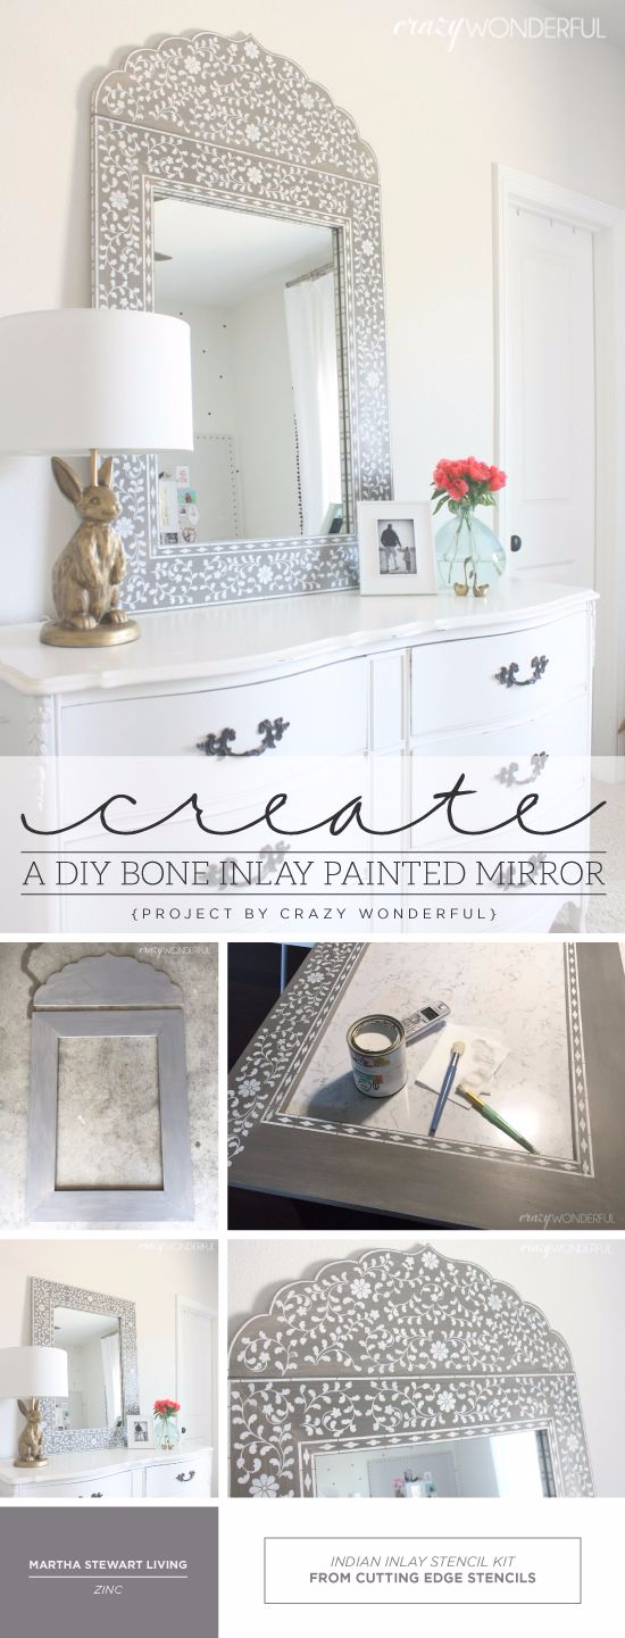 DIY Mirrors - DIY Bone Inlay Painted Mirror - Best Do It Yourself Mirror Projects and Cool Crafts Using Mirrors - Home Decor, Bedroom Decor and Bath Ideas - Step By Step Tutorials With Instructions http://diyjoy.com/diy-mirrors